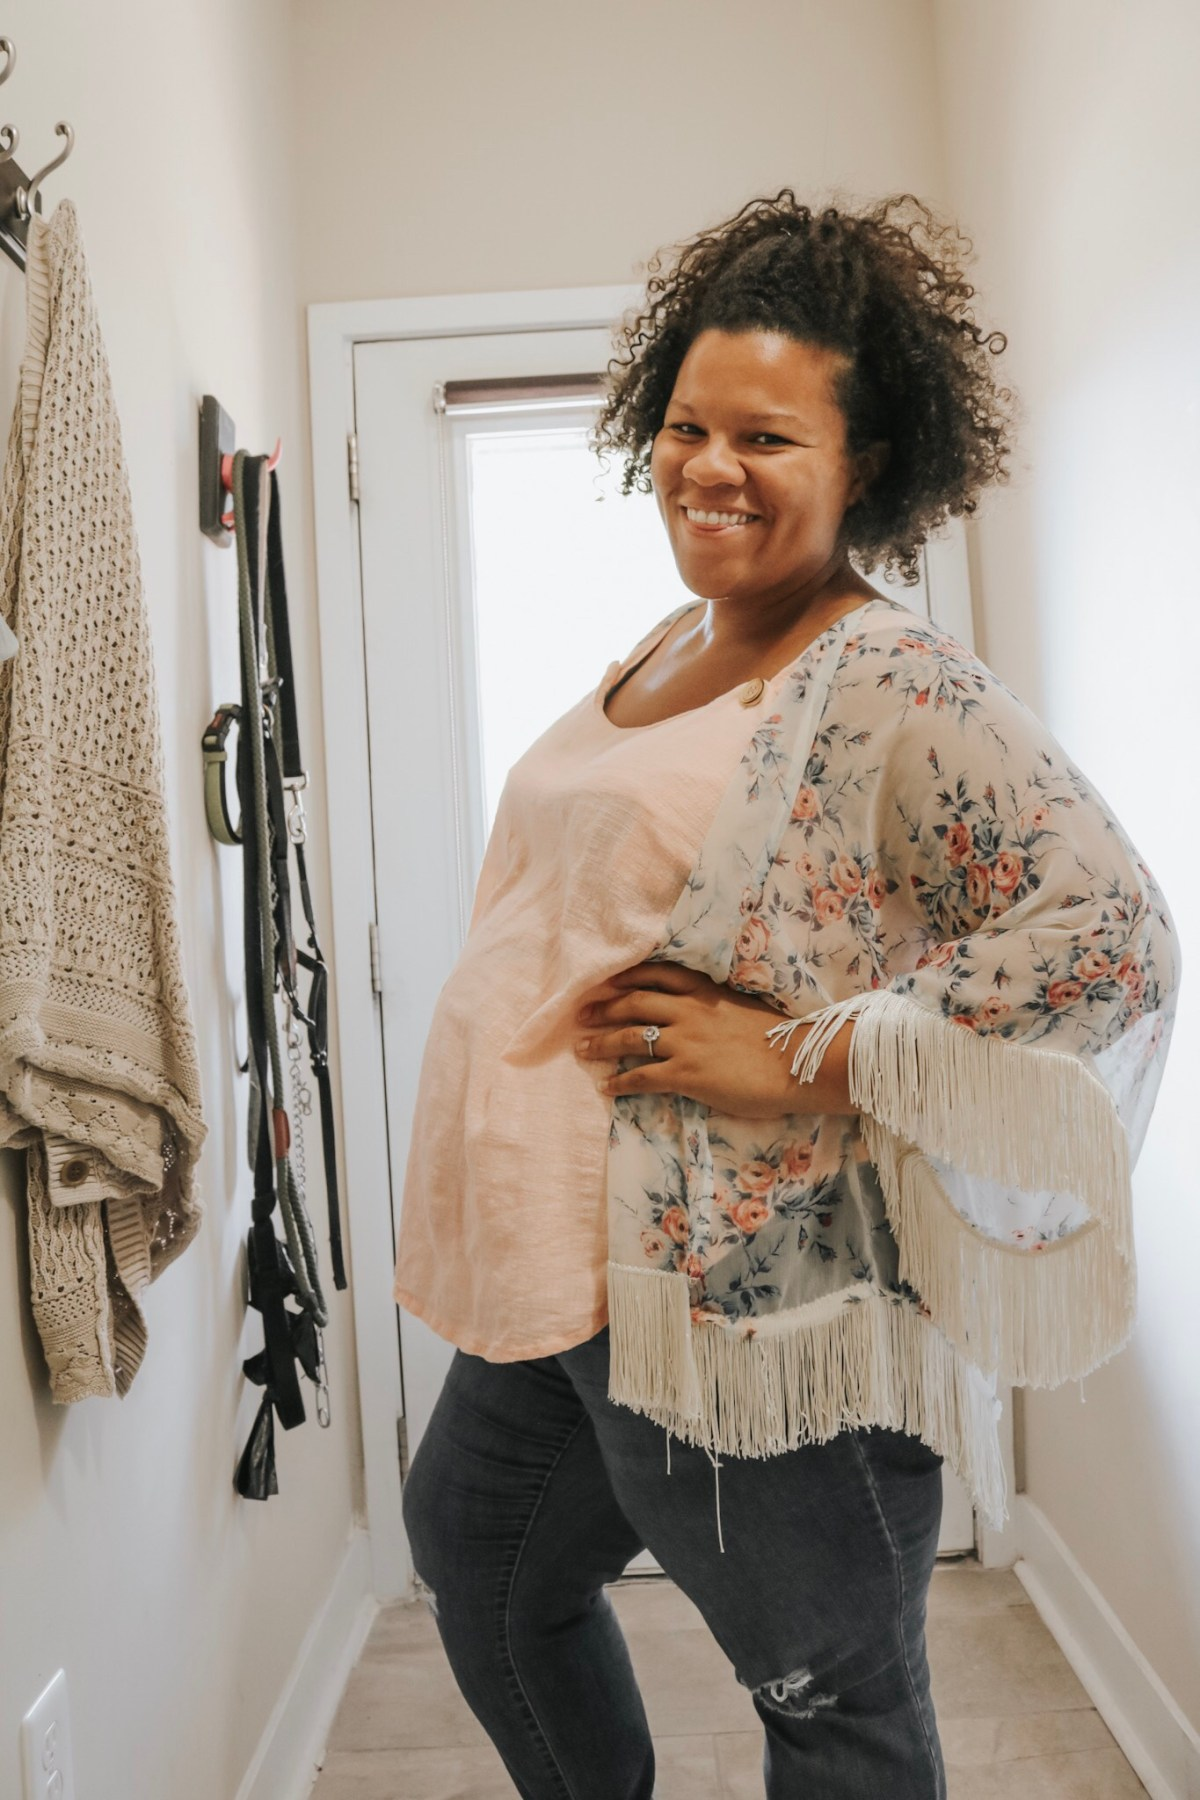 Amanda's photo shows her in profile to the camera, showing off her baby bump! She wears a pale peach sleeveless top with a sheer, floral, fringed duster over top of ripped jeans.